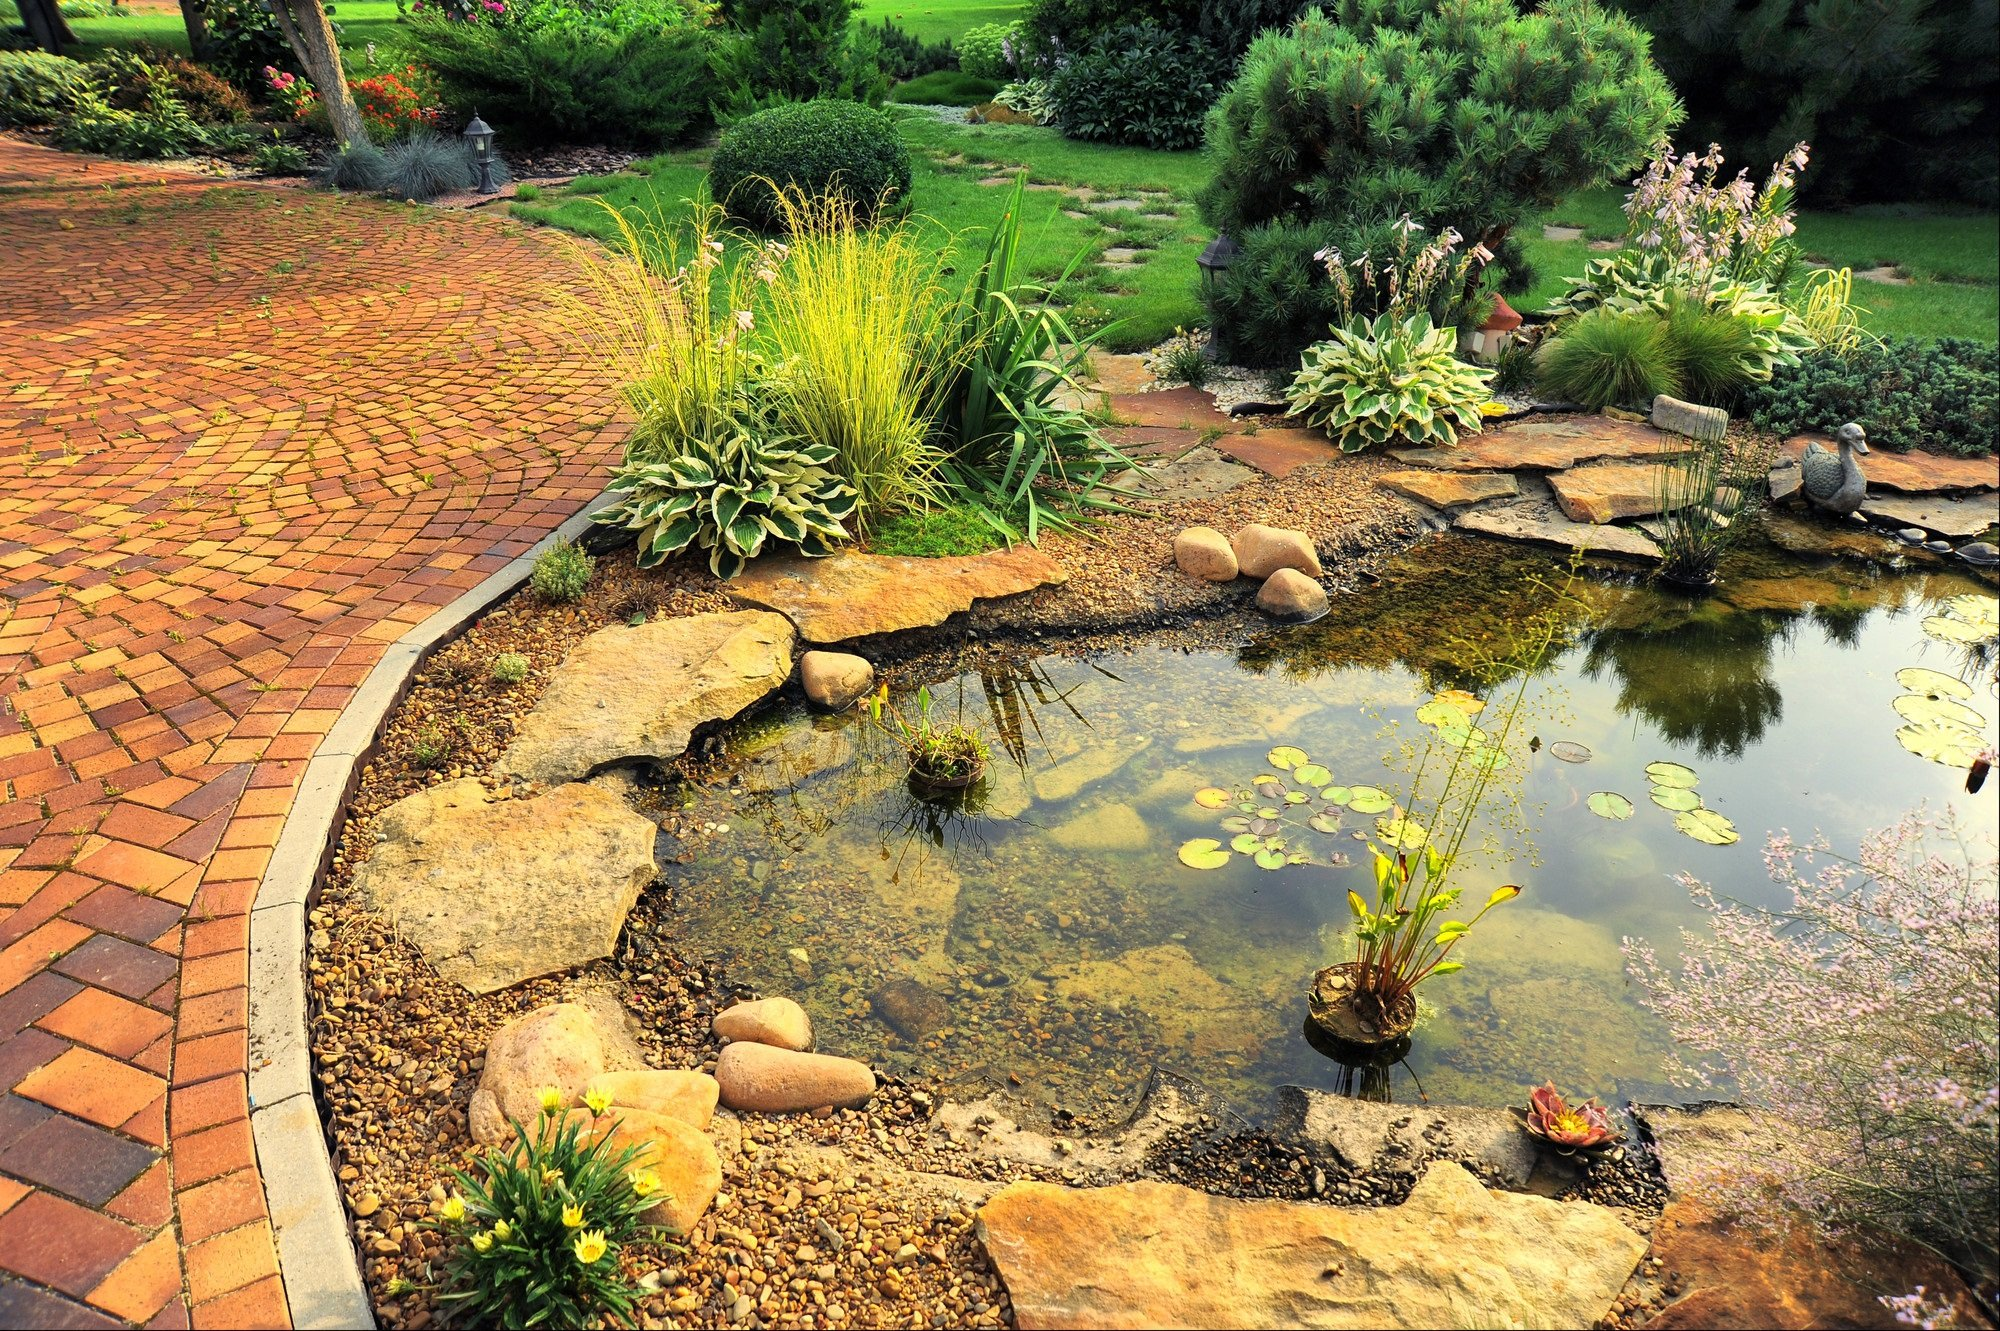 pond in rockery style edging with aquatic plants